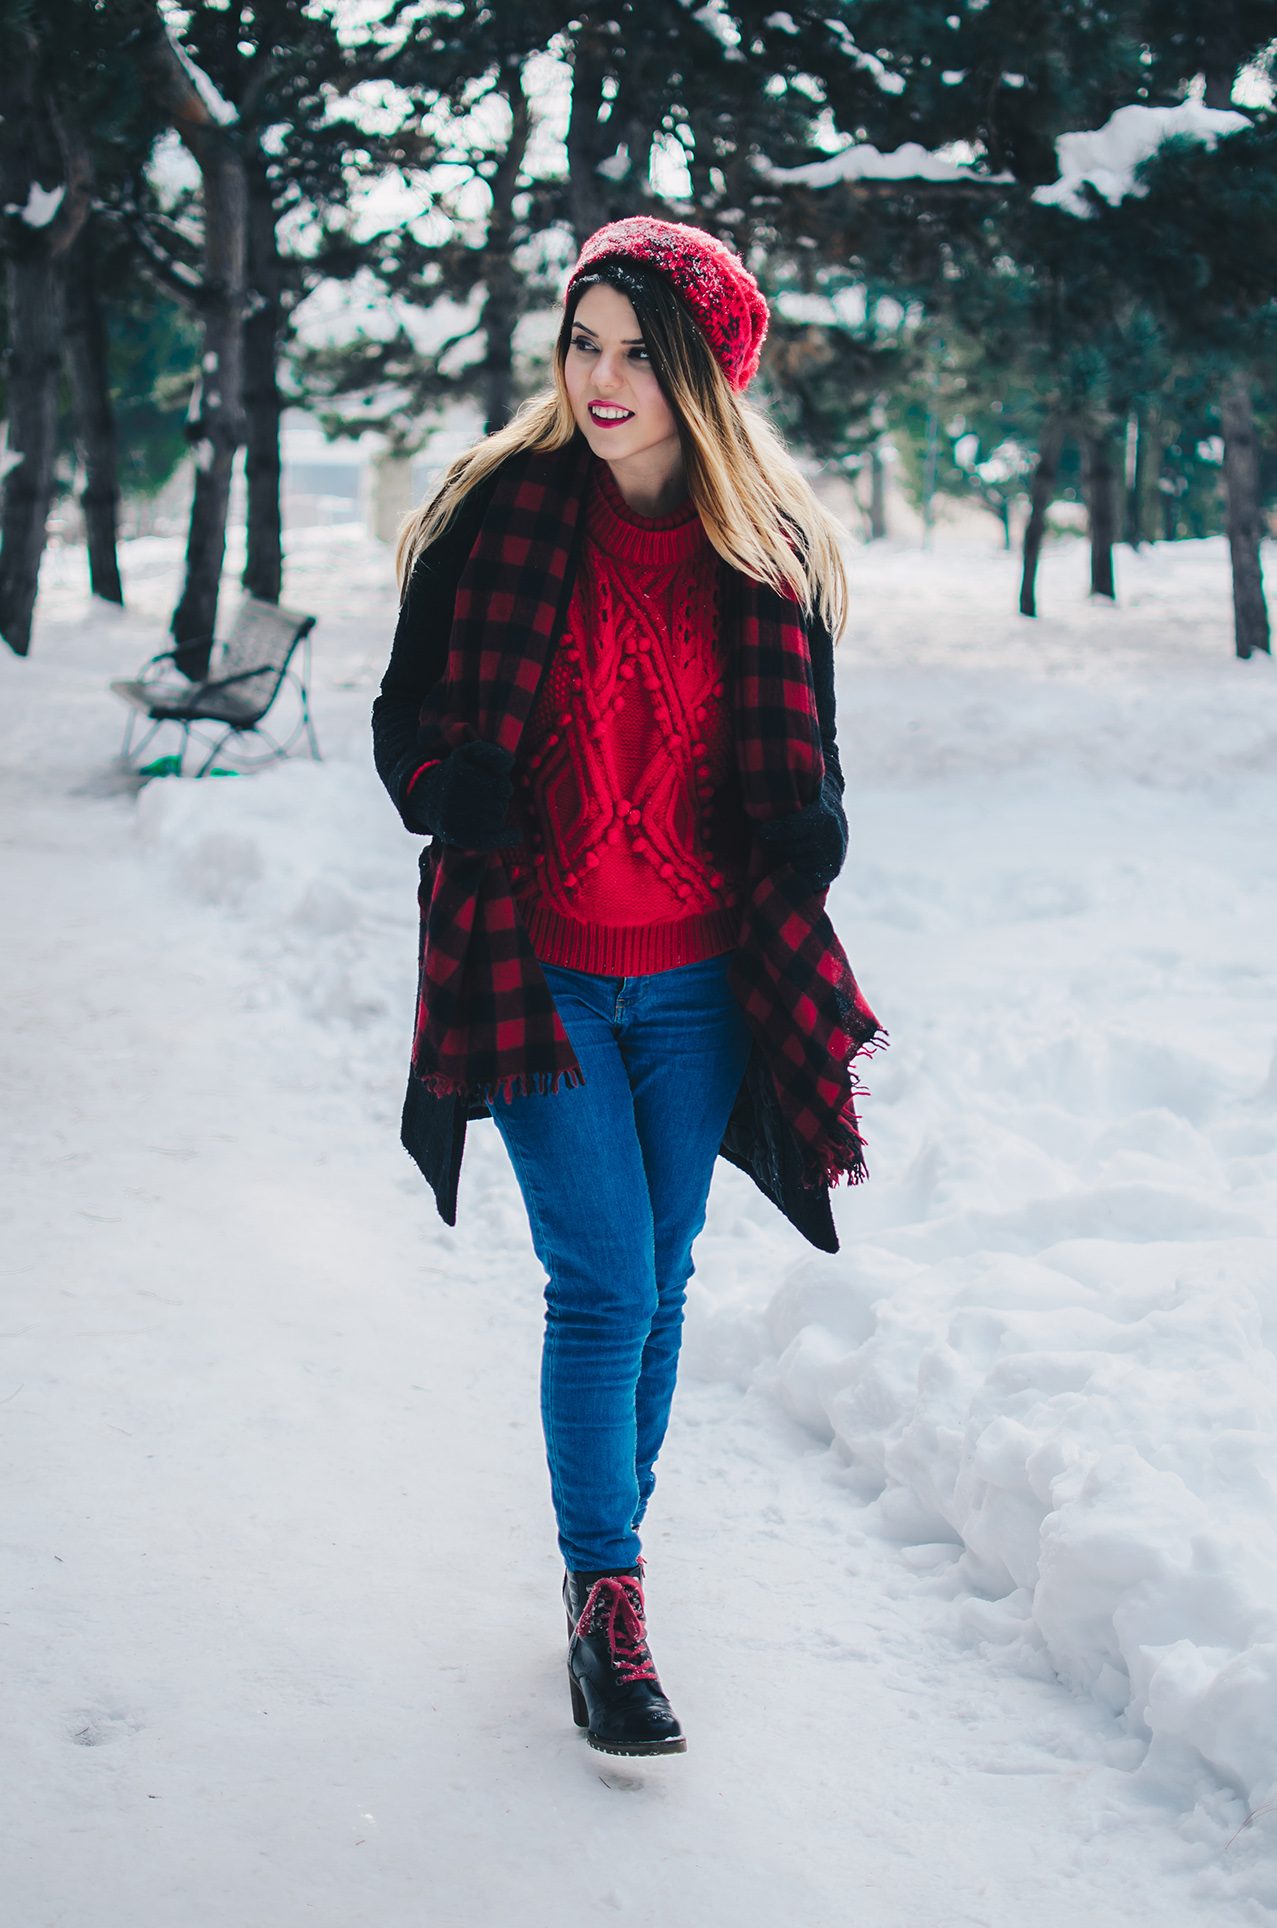 red winter outfit anotherside of me blog